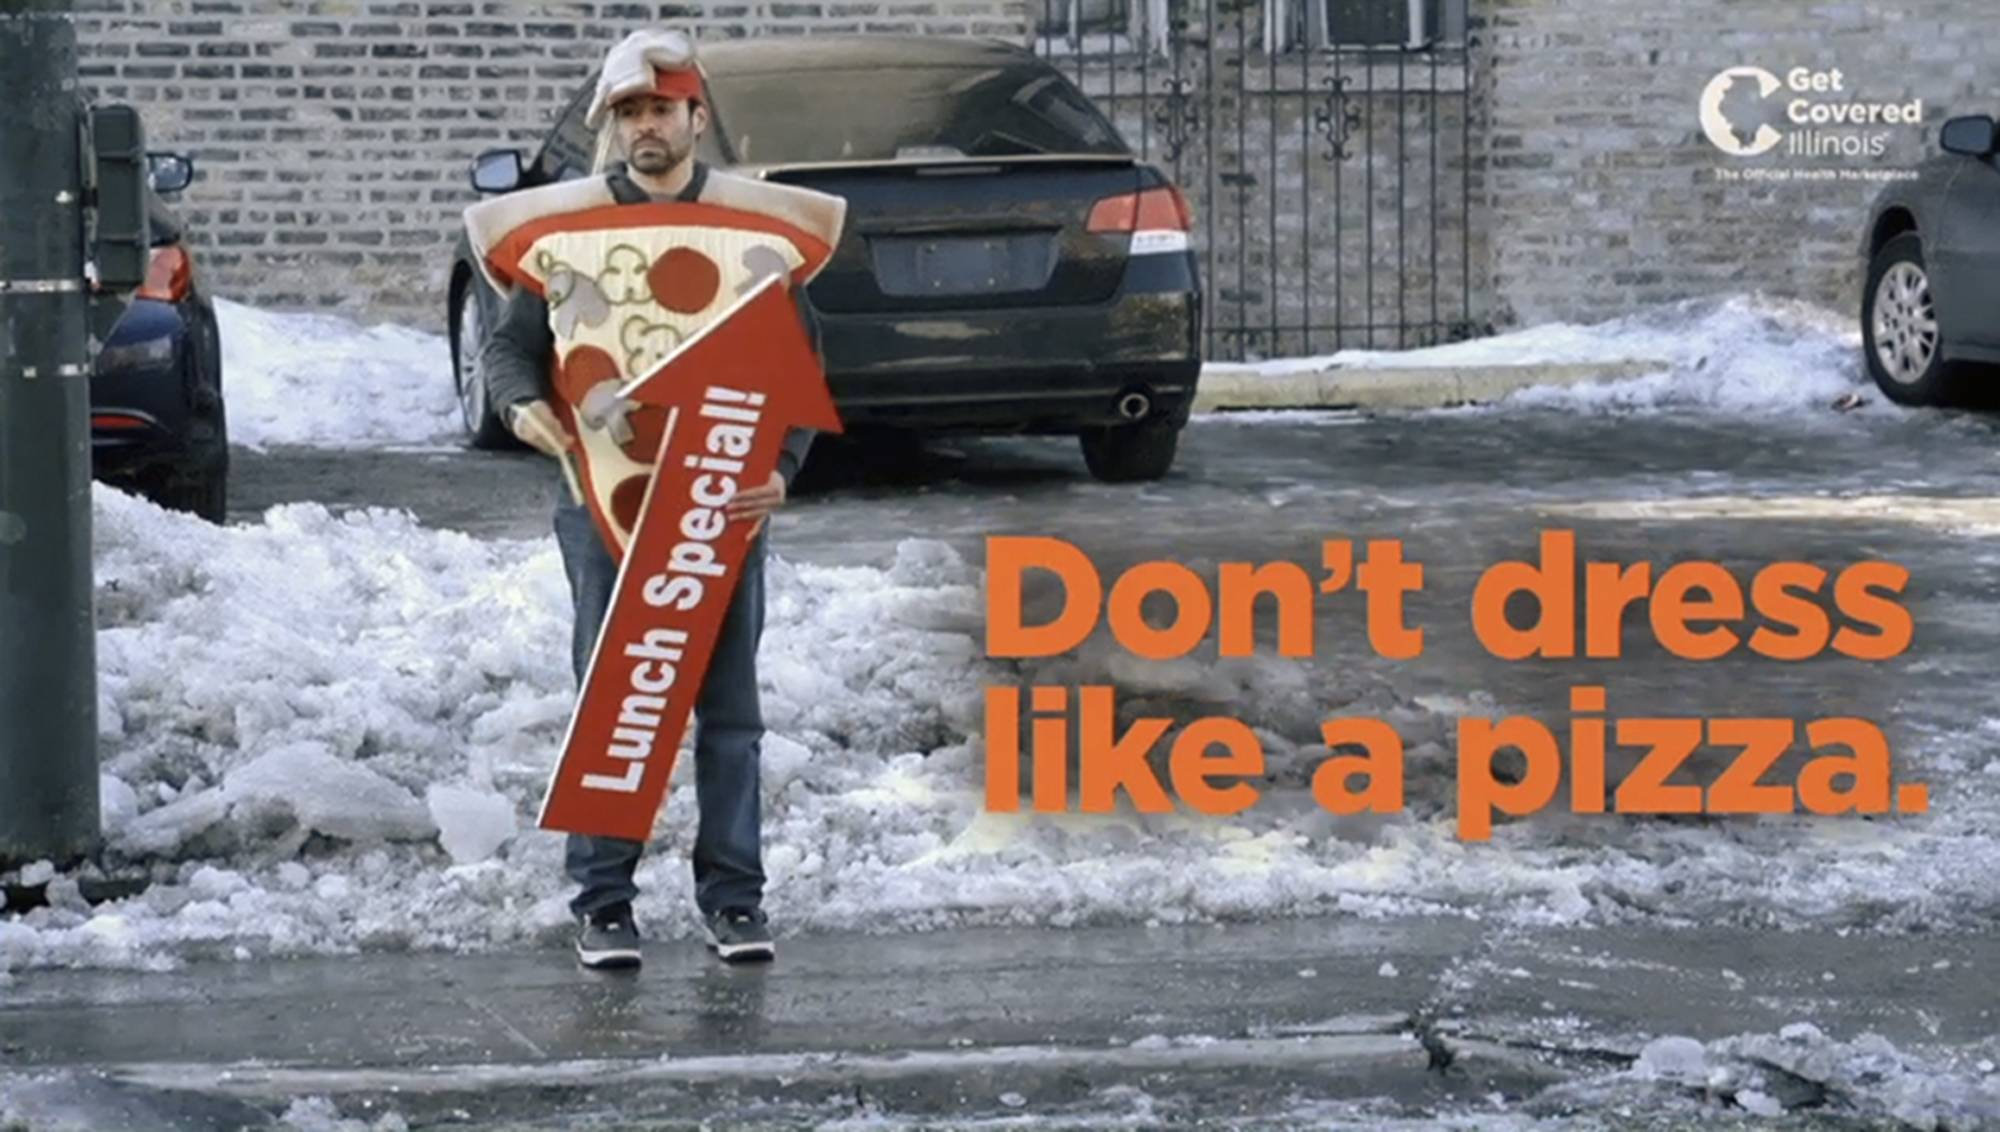 Illinois use satirical ads to encourage young adults to sign up for health insurance by a March 31 deadline under the national health care law. The state spent $37 per enrollee on television ads — one of the highest rates in the nation.